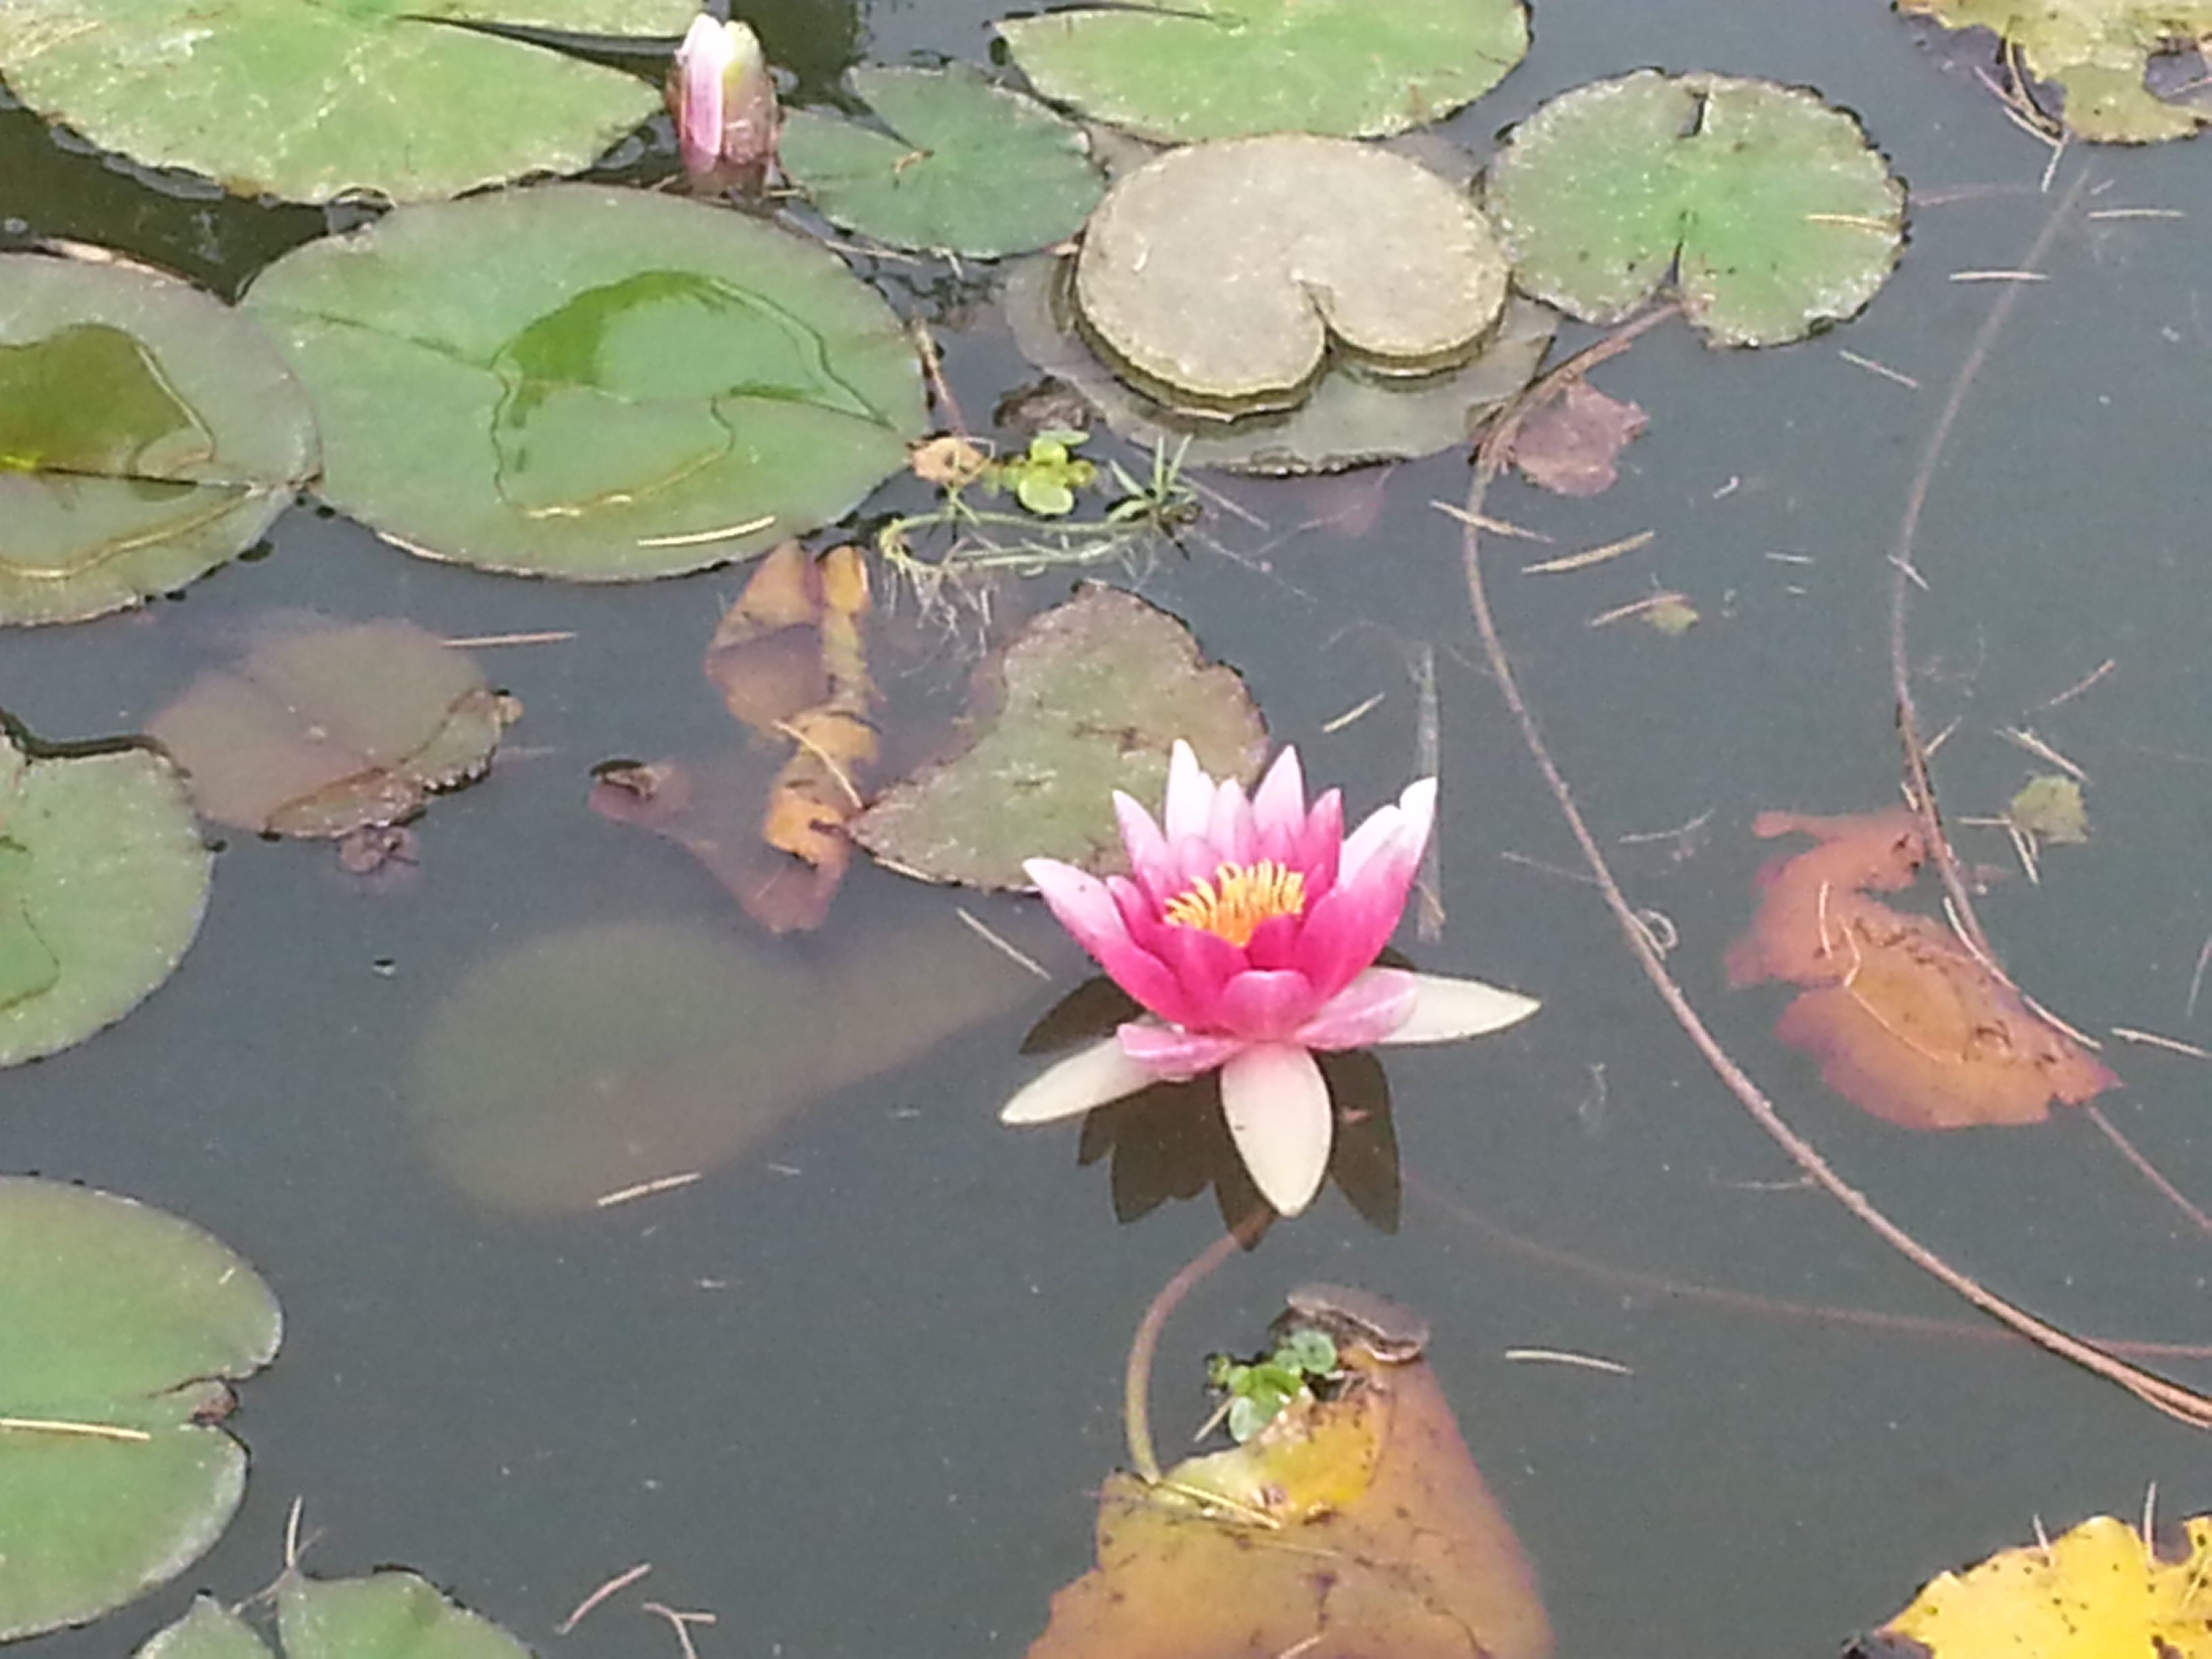 Lotus flower rebirth the great force travels images pinterest lotus flower rebirth the great force mightylinksfo